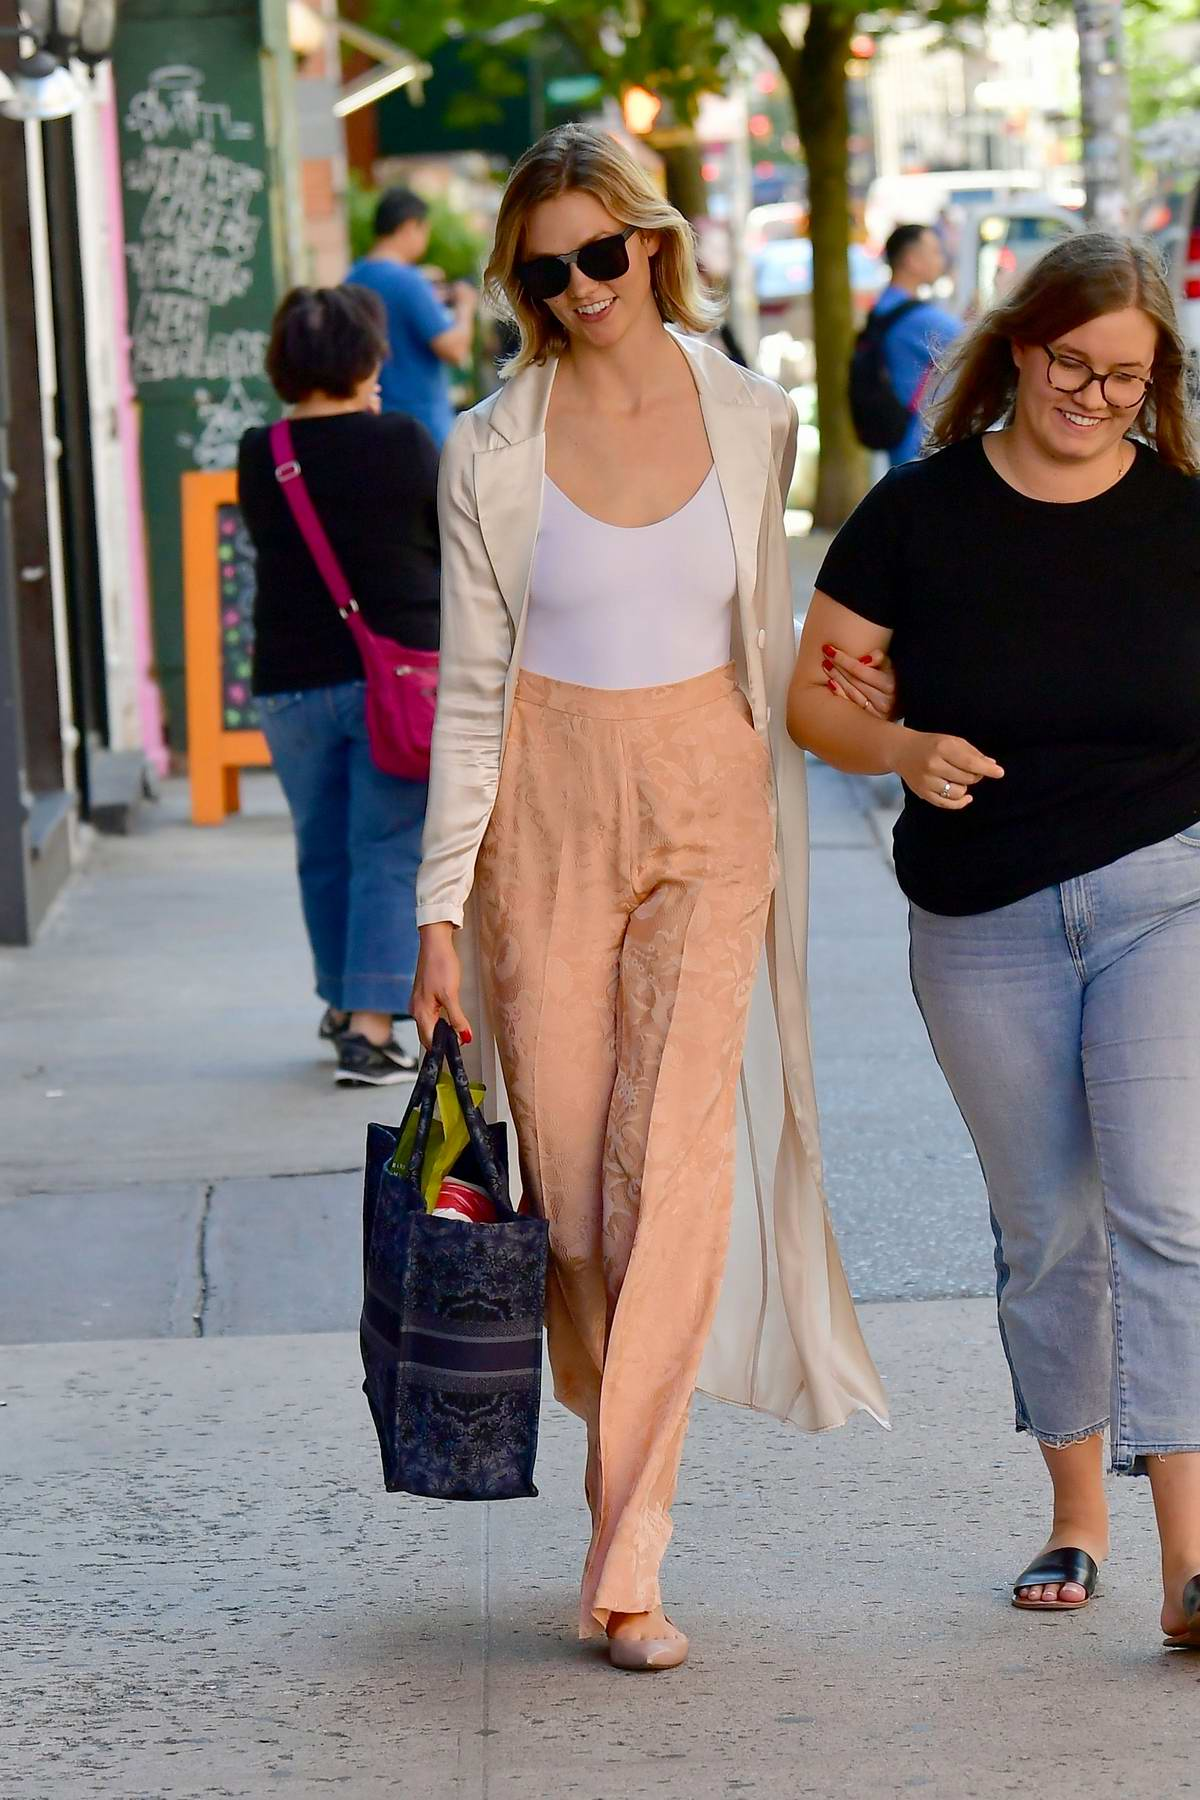 Karlie Kloss steps out with a smile and peach colored satin pants during an outing in New York City